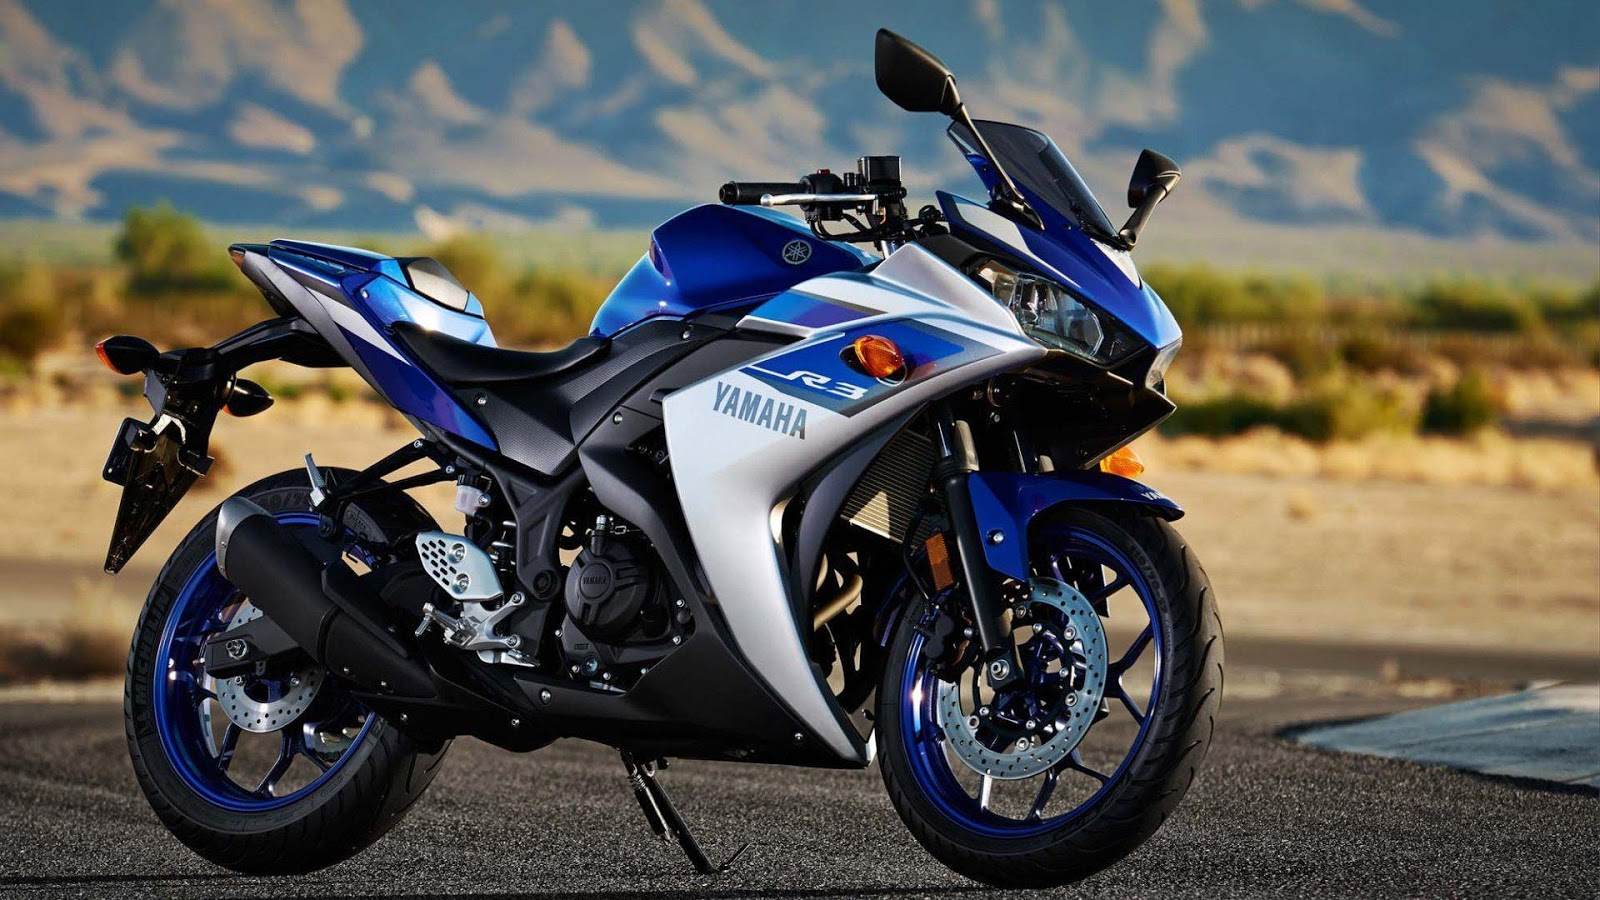 new 2016 yamaha yzf r1 & yzf r1m hd photos gallery - all latest new